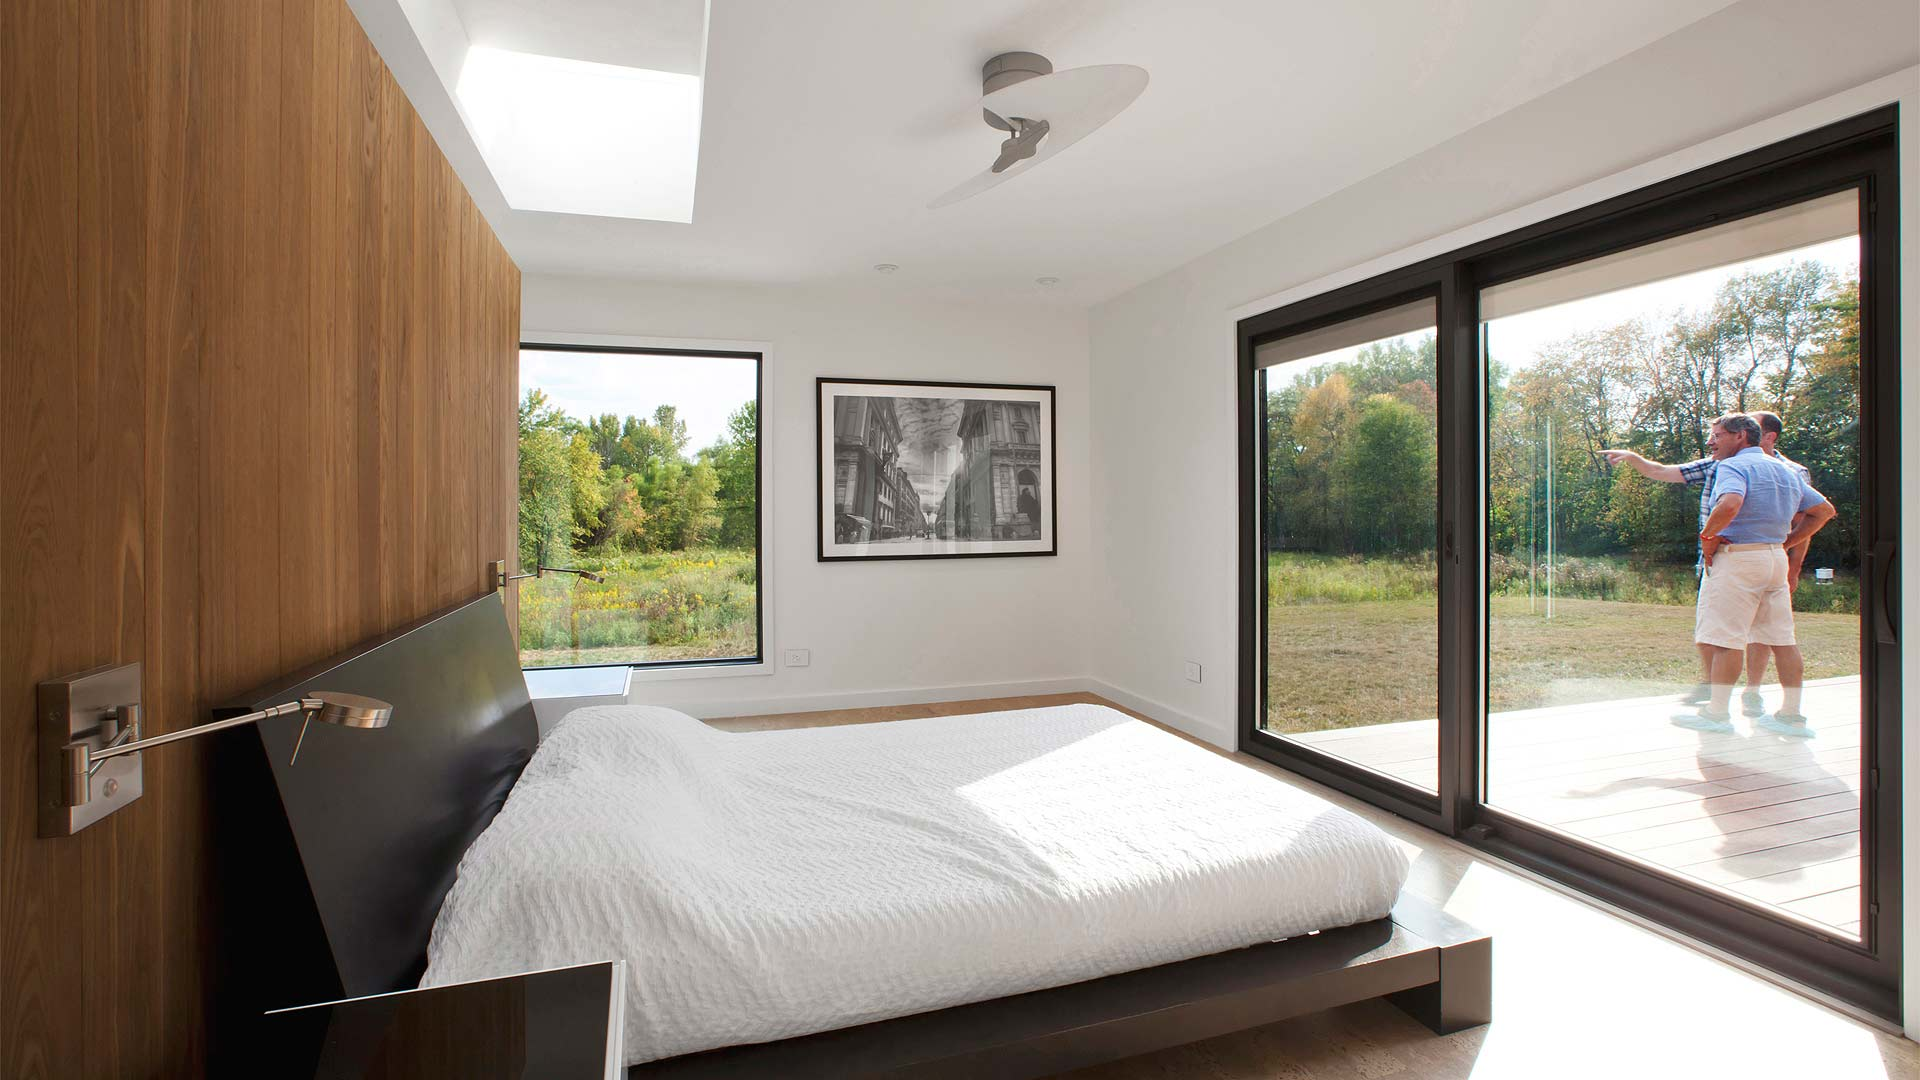 Master Bedroom with skylight, large windows with views to property, and thermally treated partial height wall separating master spa - Privacy partition beyond provides privacy to toilet - New Modern House 1 (Copperwood) - Zionsville, IN